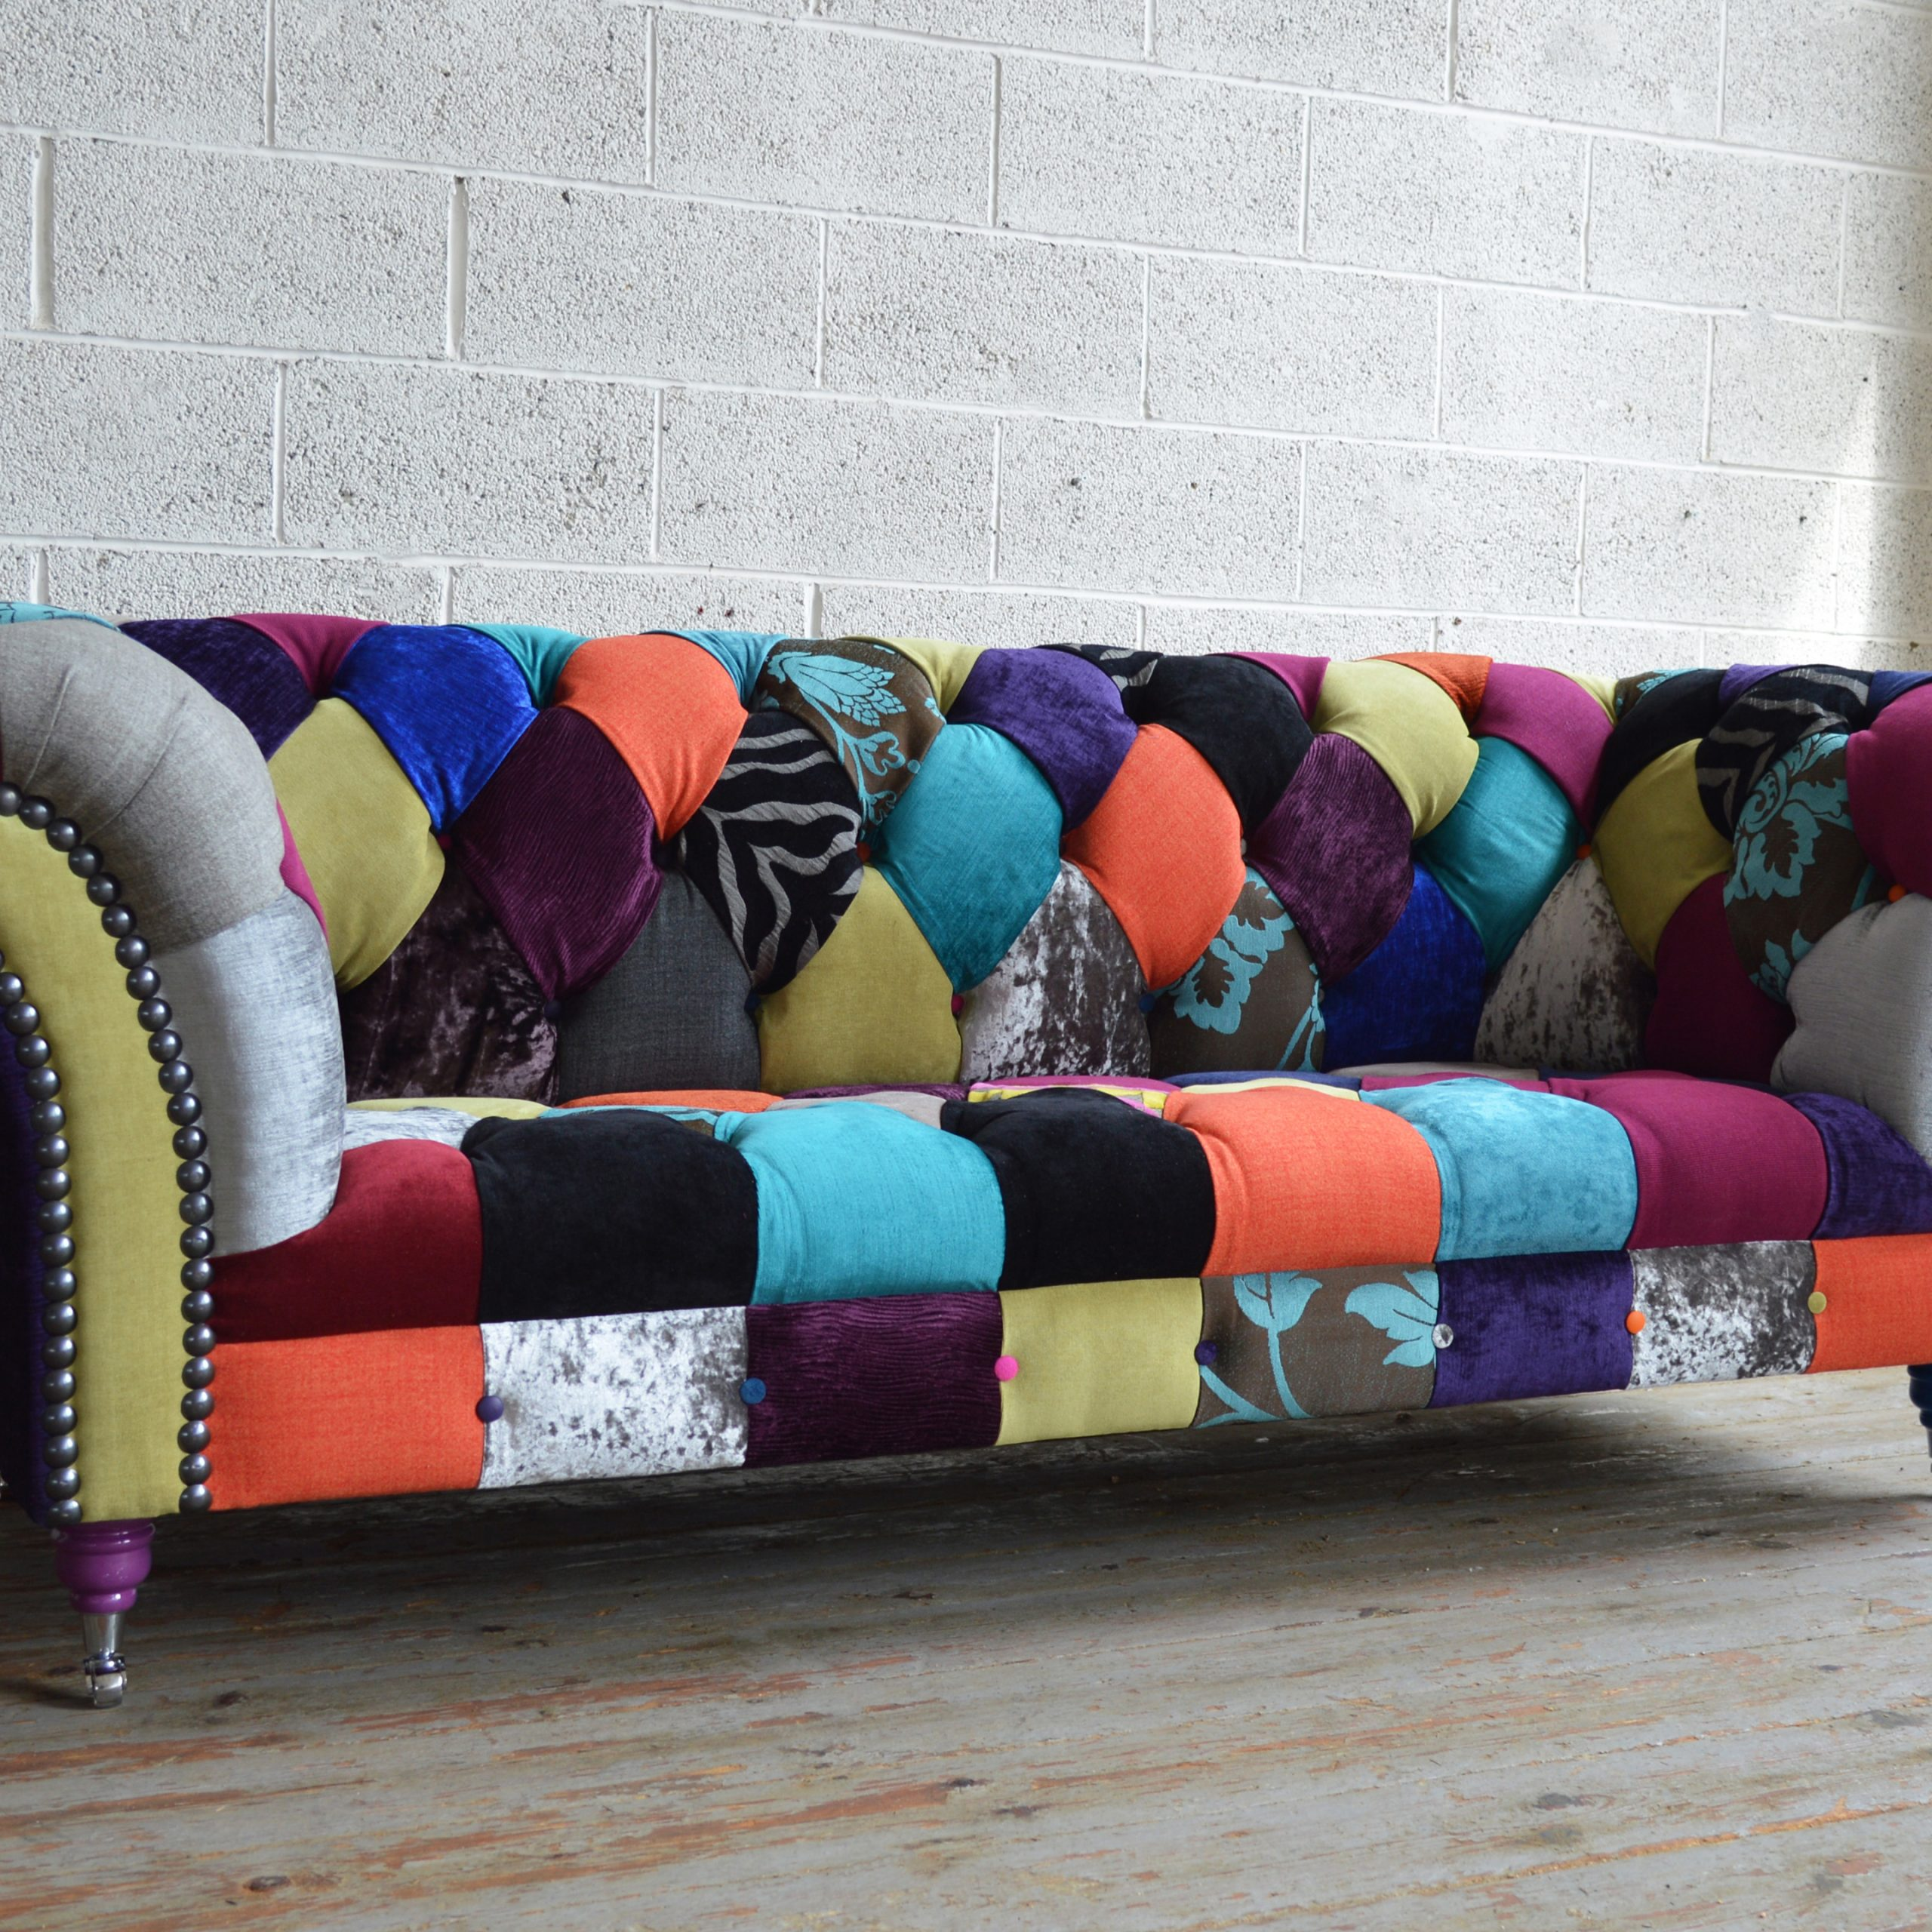 Brighton Patchwork Chesterfield Sofa | Abode Sofas Intended For Chesterfield Sofas (View 15 of 15)